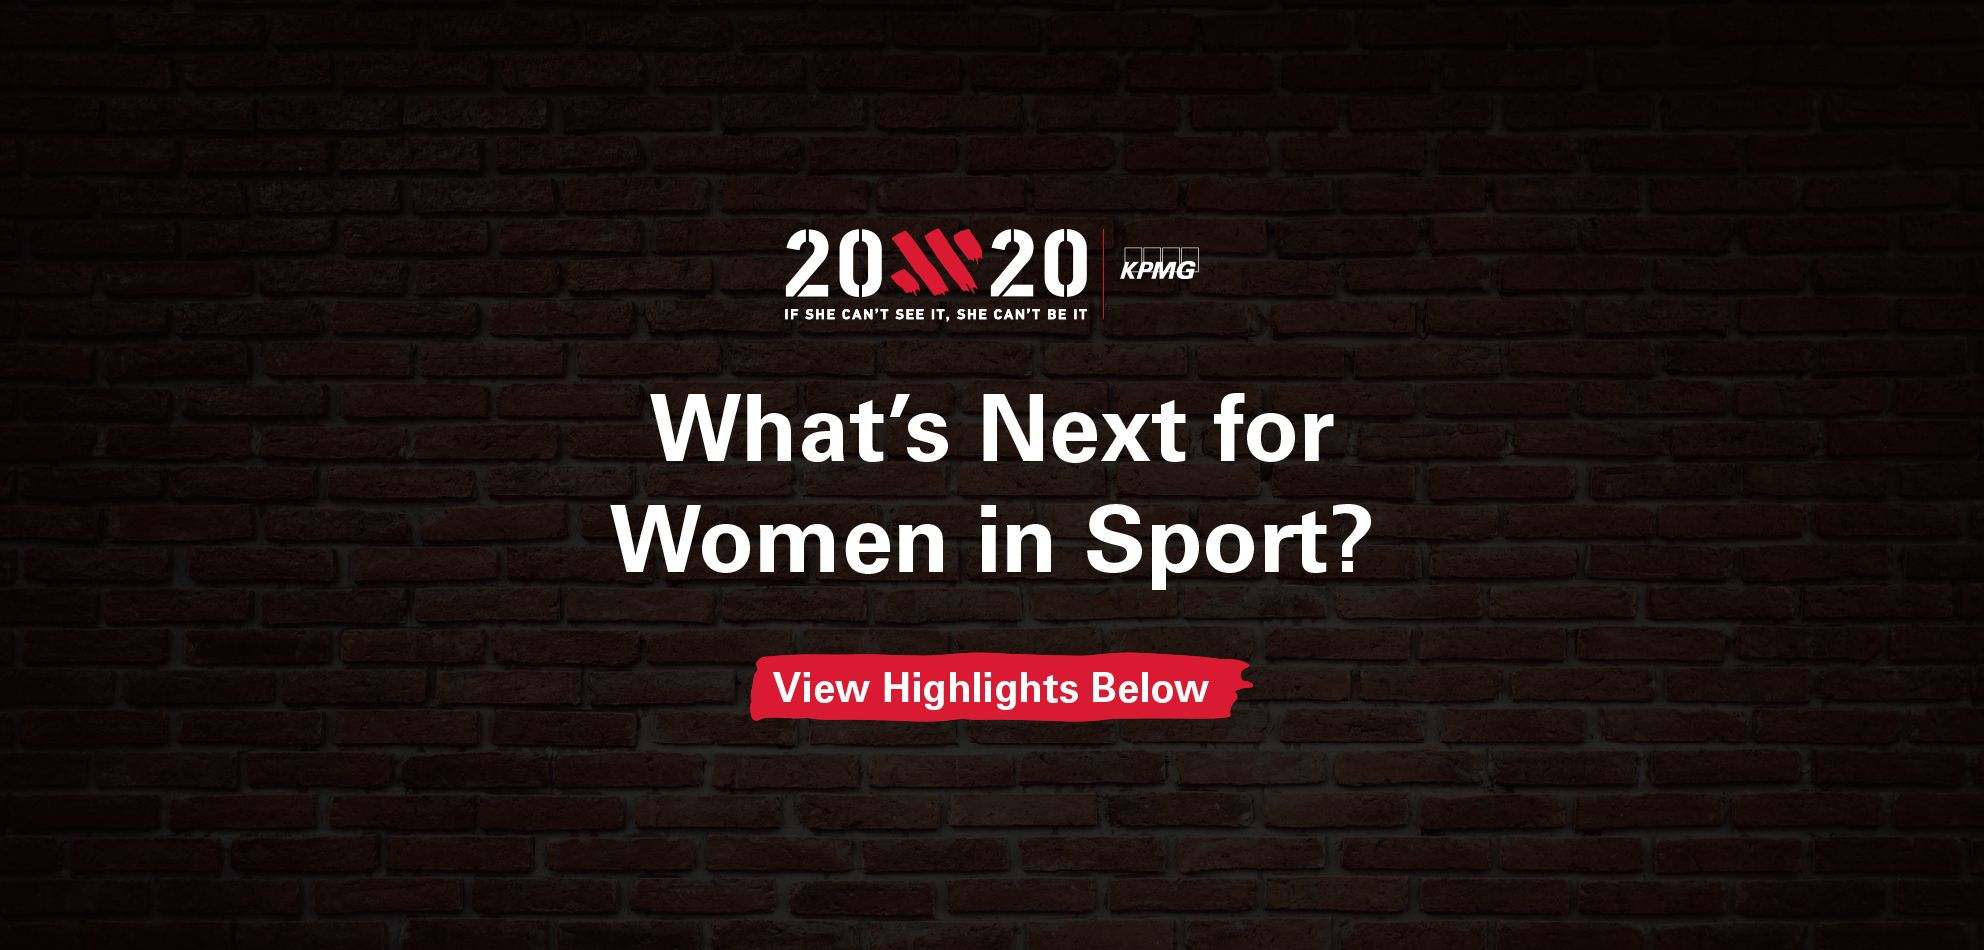 What's next for women in sport?